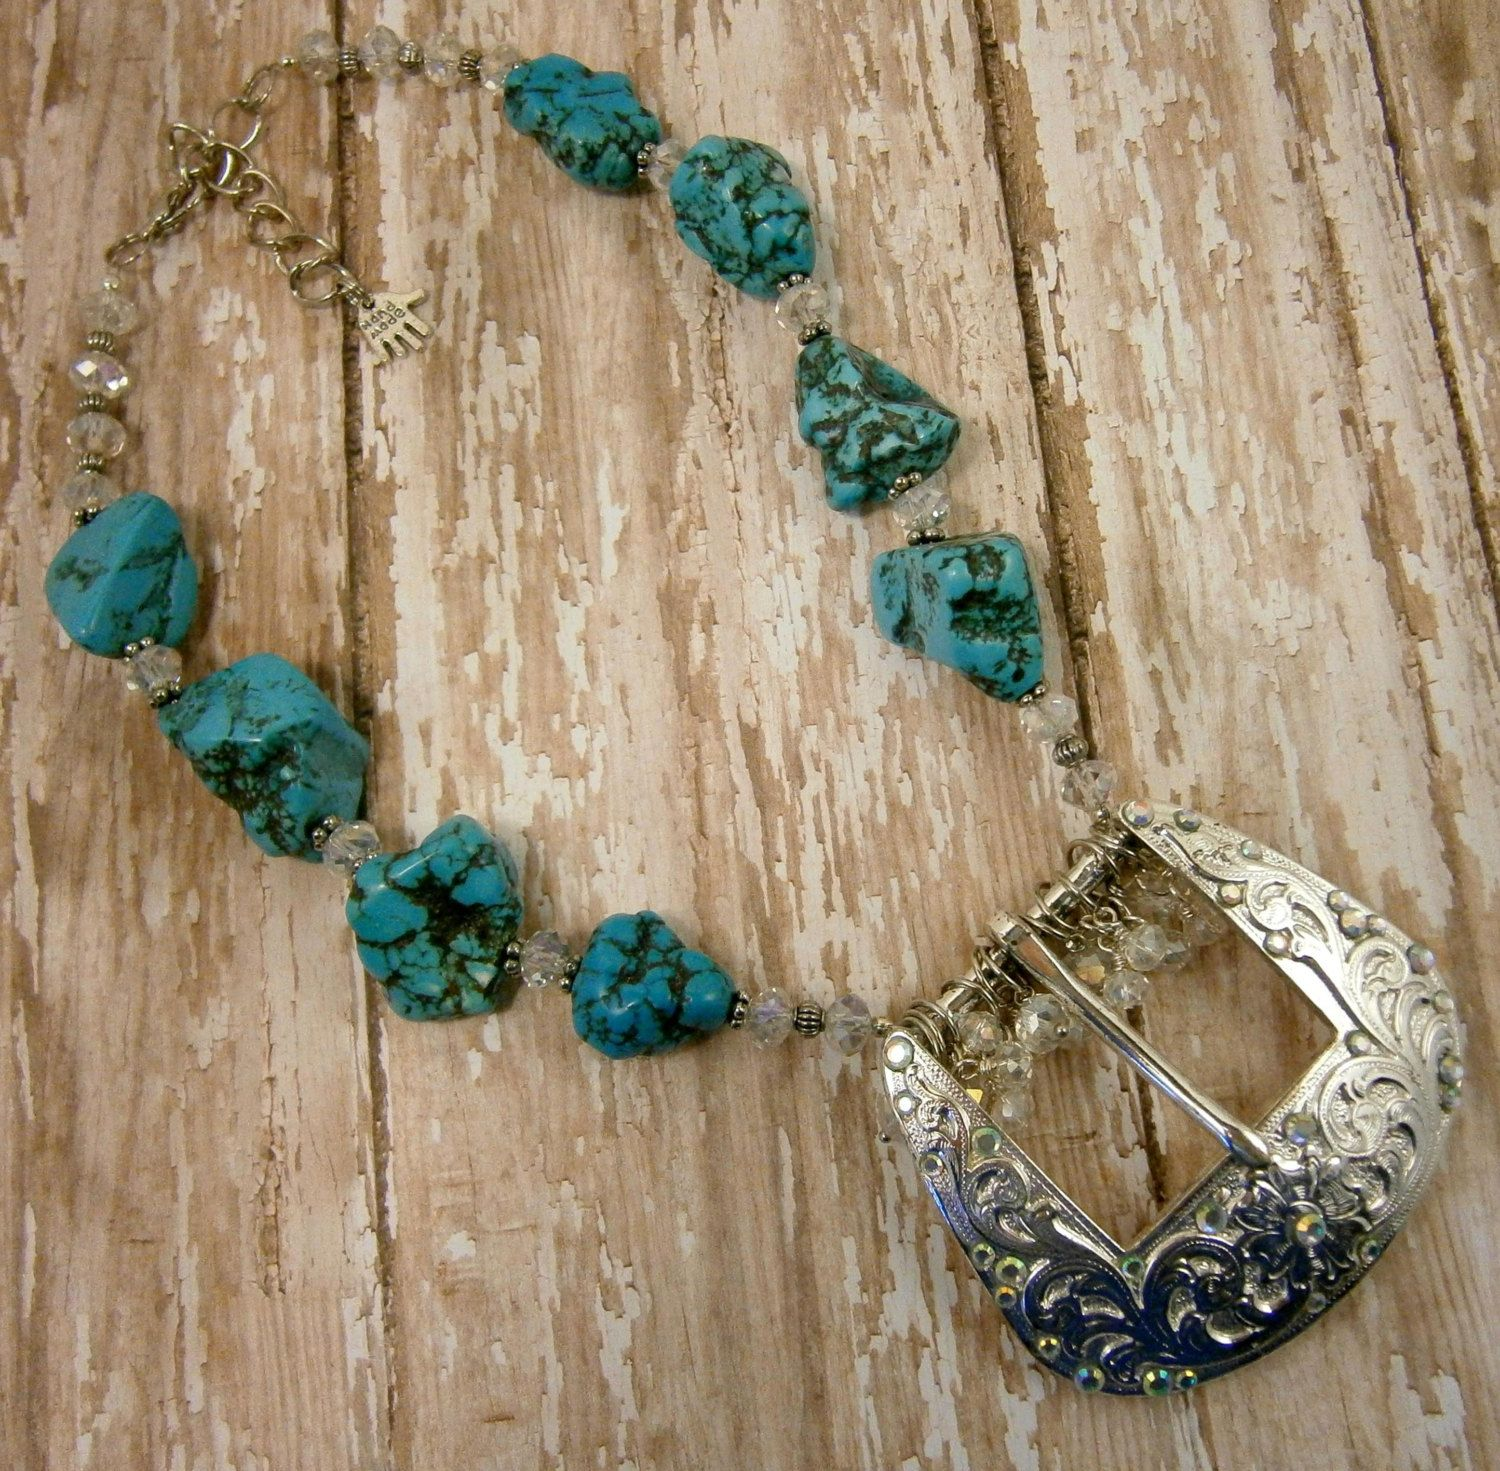 Western Style Belt Buckle Necklace With Turquoise And Crystals Via Etsy Amymarie